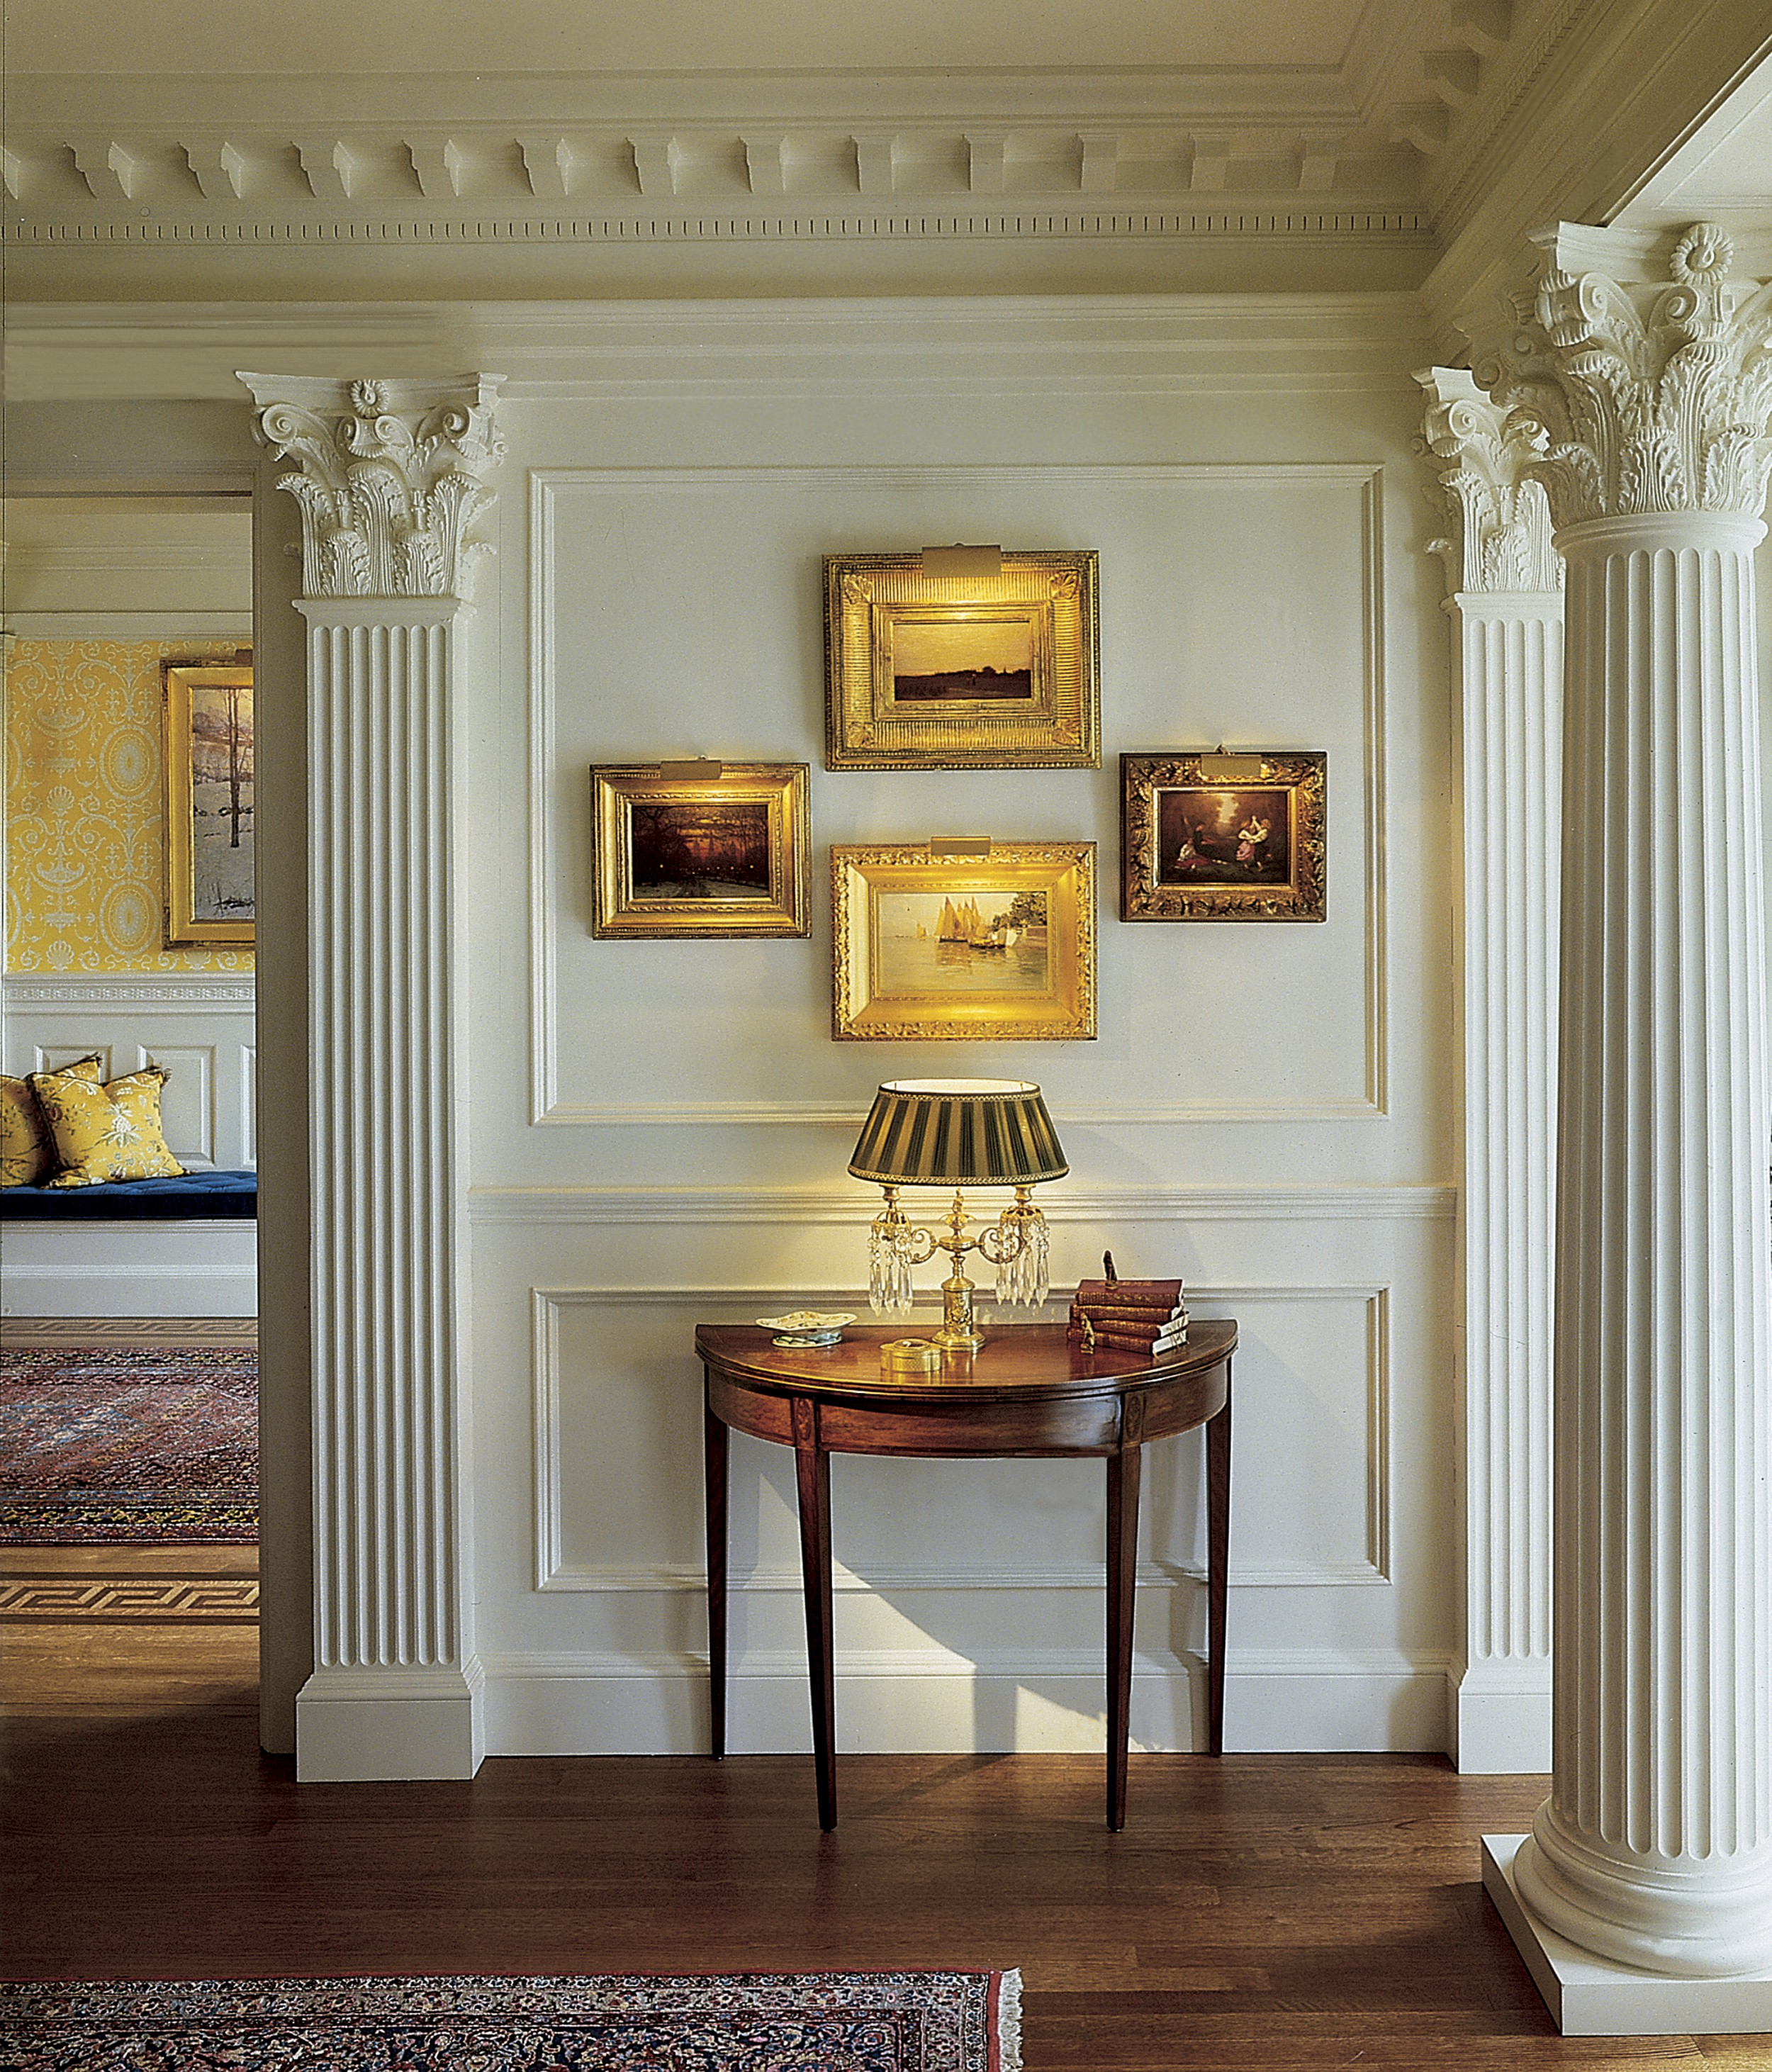 Modern Home Architecture Interior Designs With Columns: Chadsworth's 1.800.COLUMNS